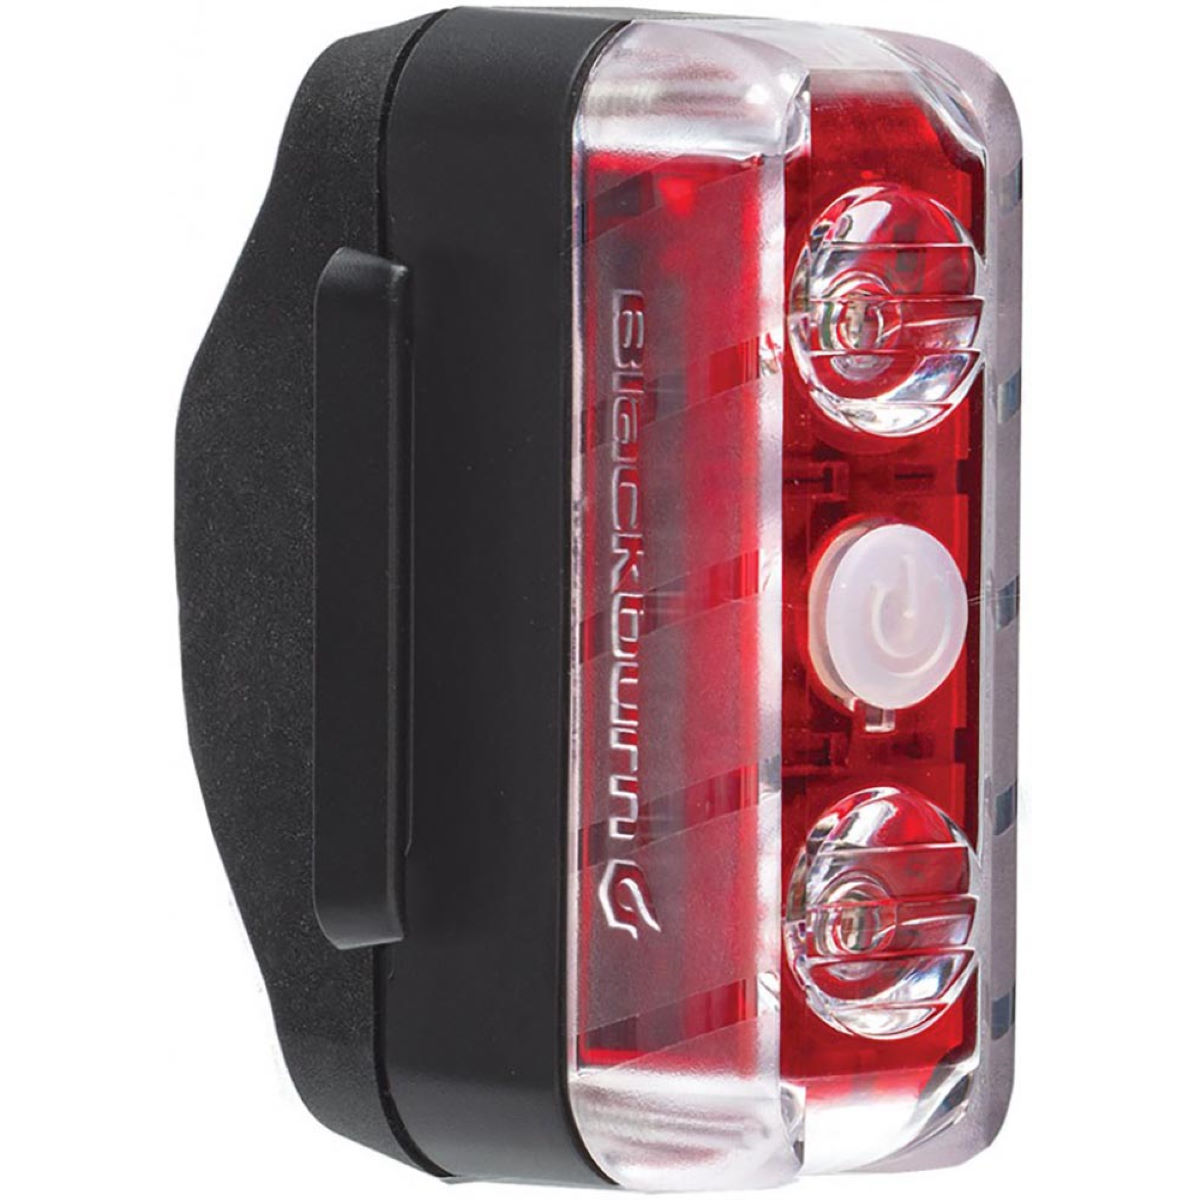 Blackburn Dayblazer 65 Rear Light - Luces traseras